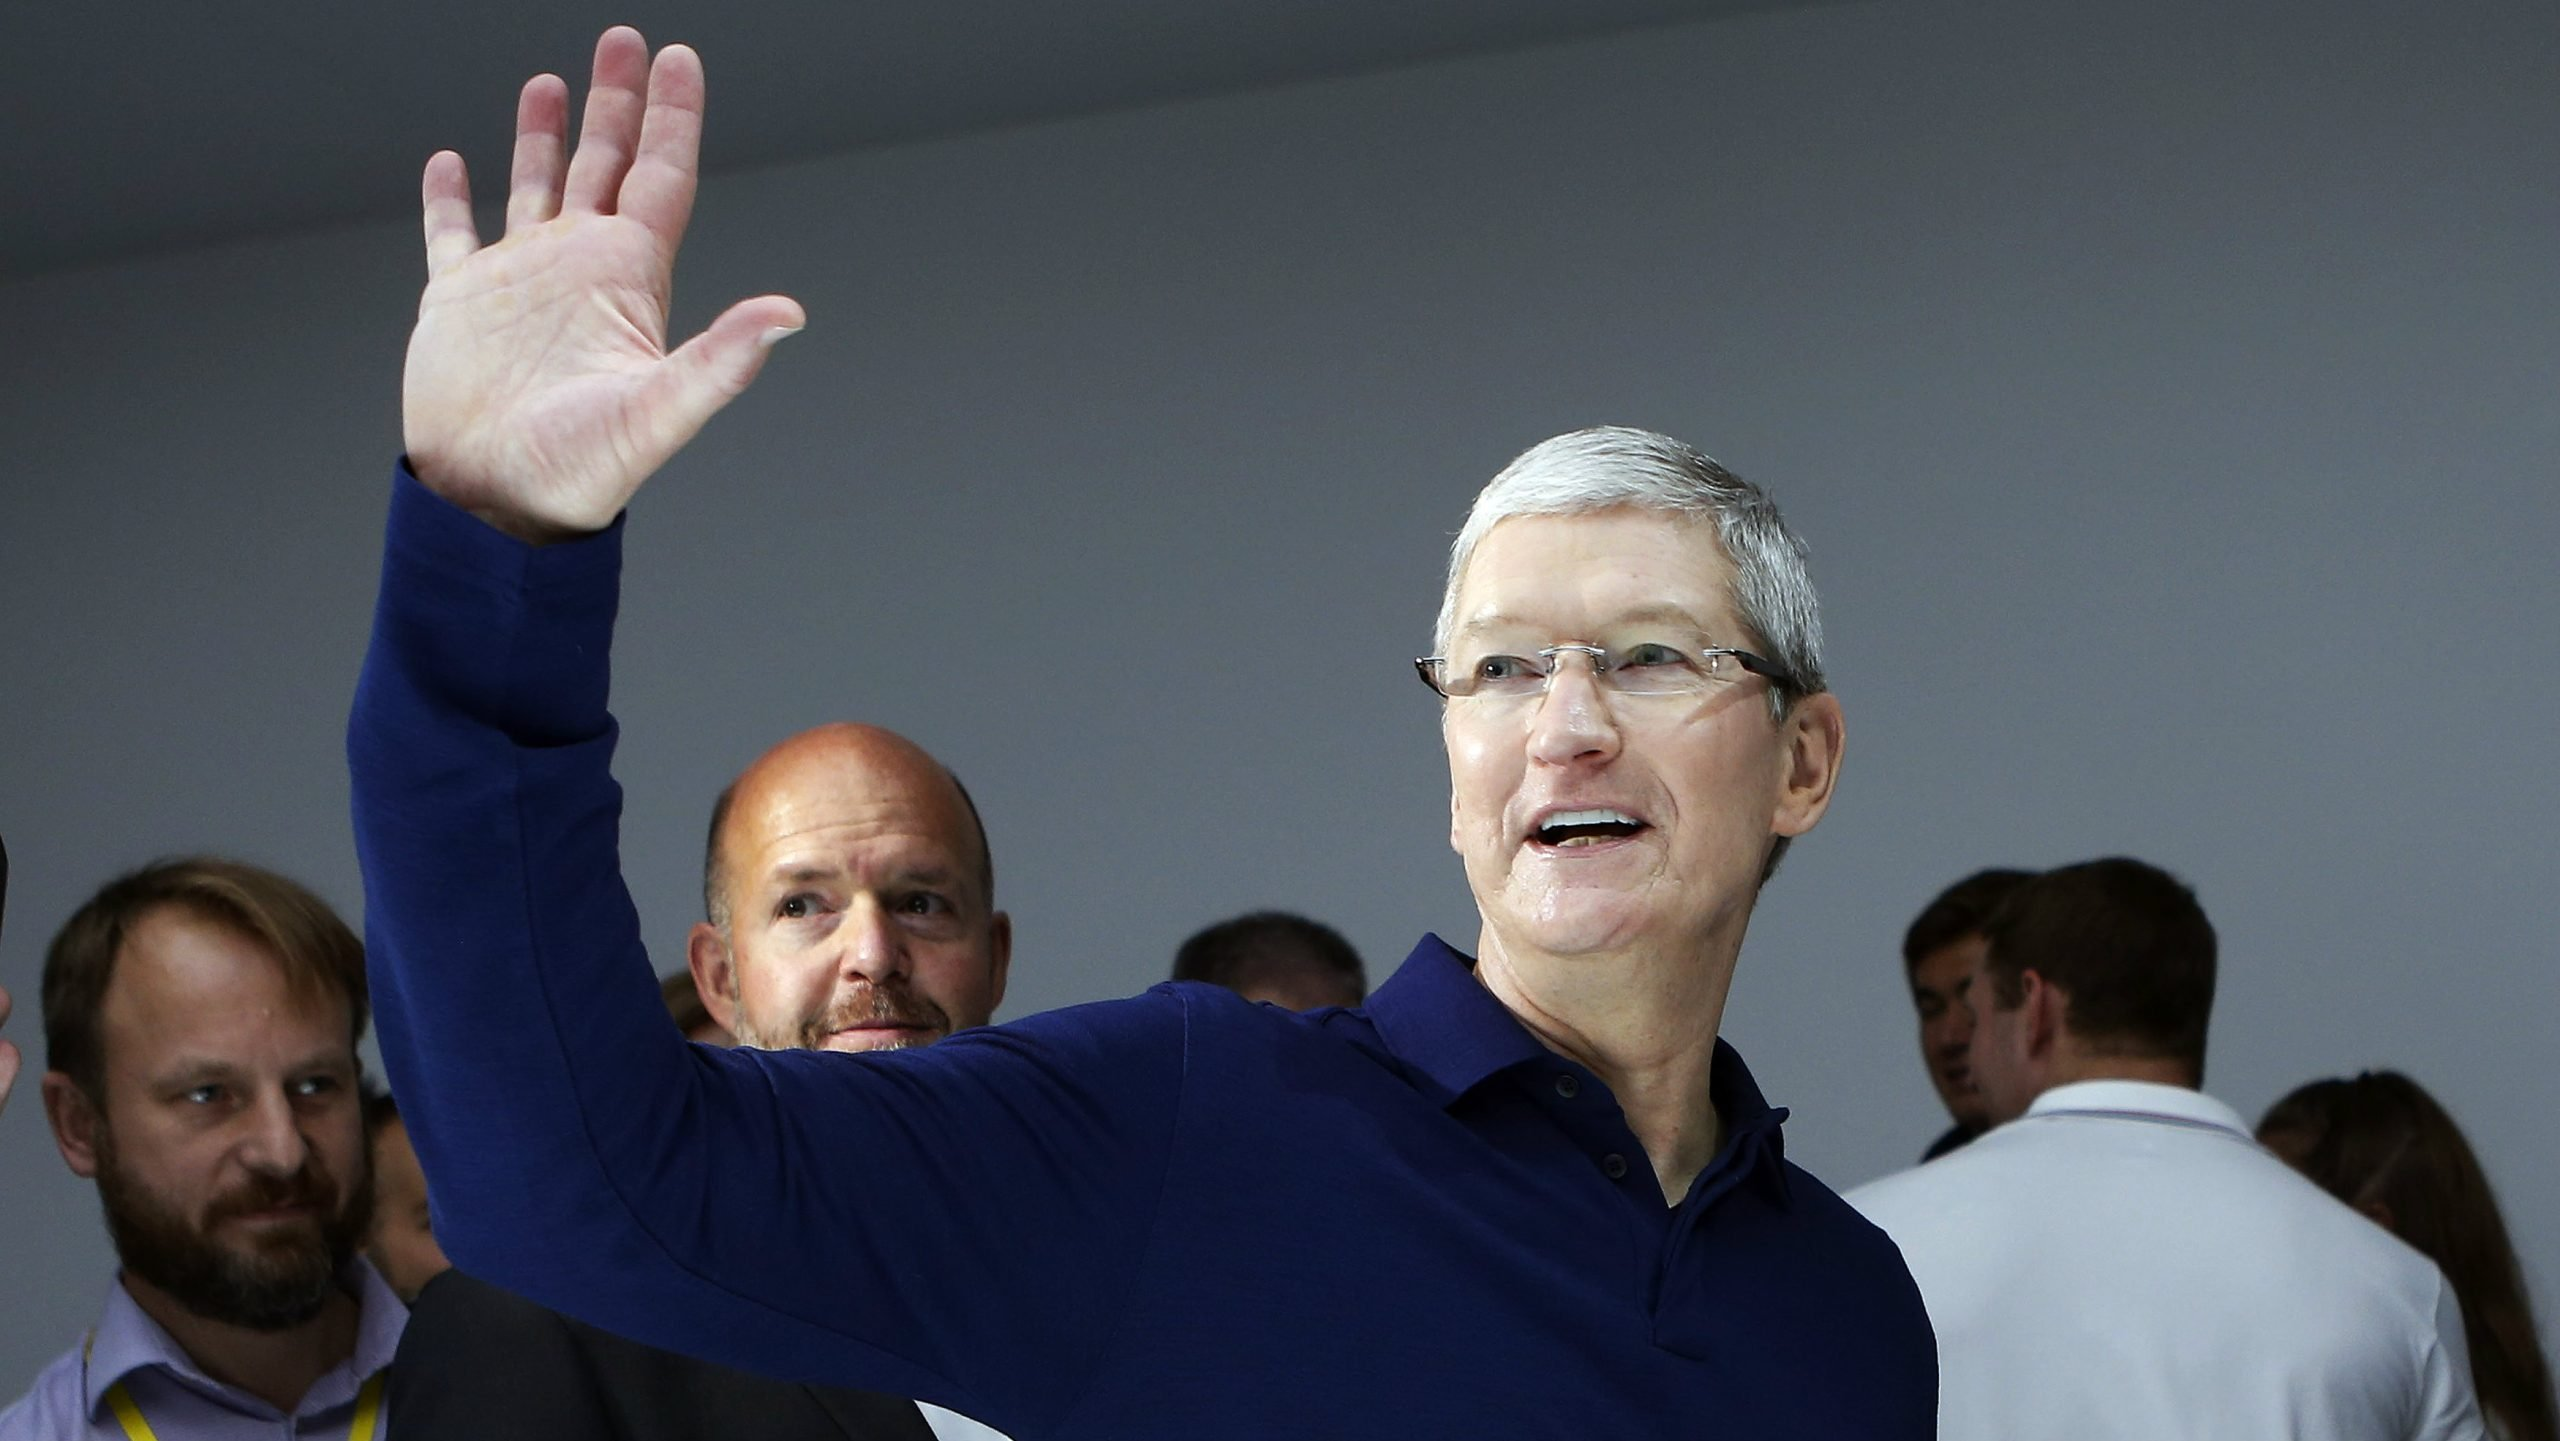 According to Tim Cook, upcoming surprises will benefit iPad sales